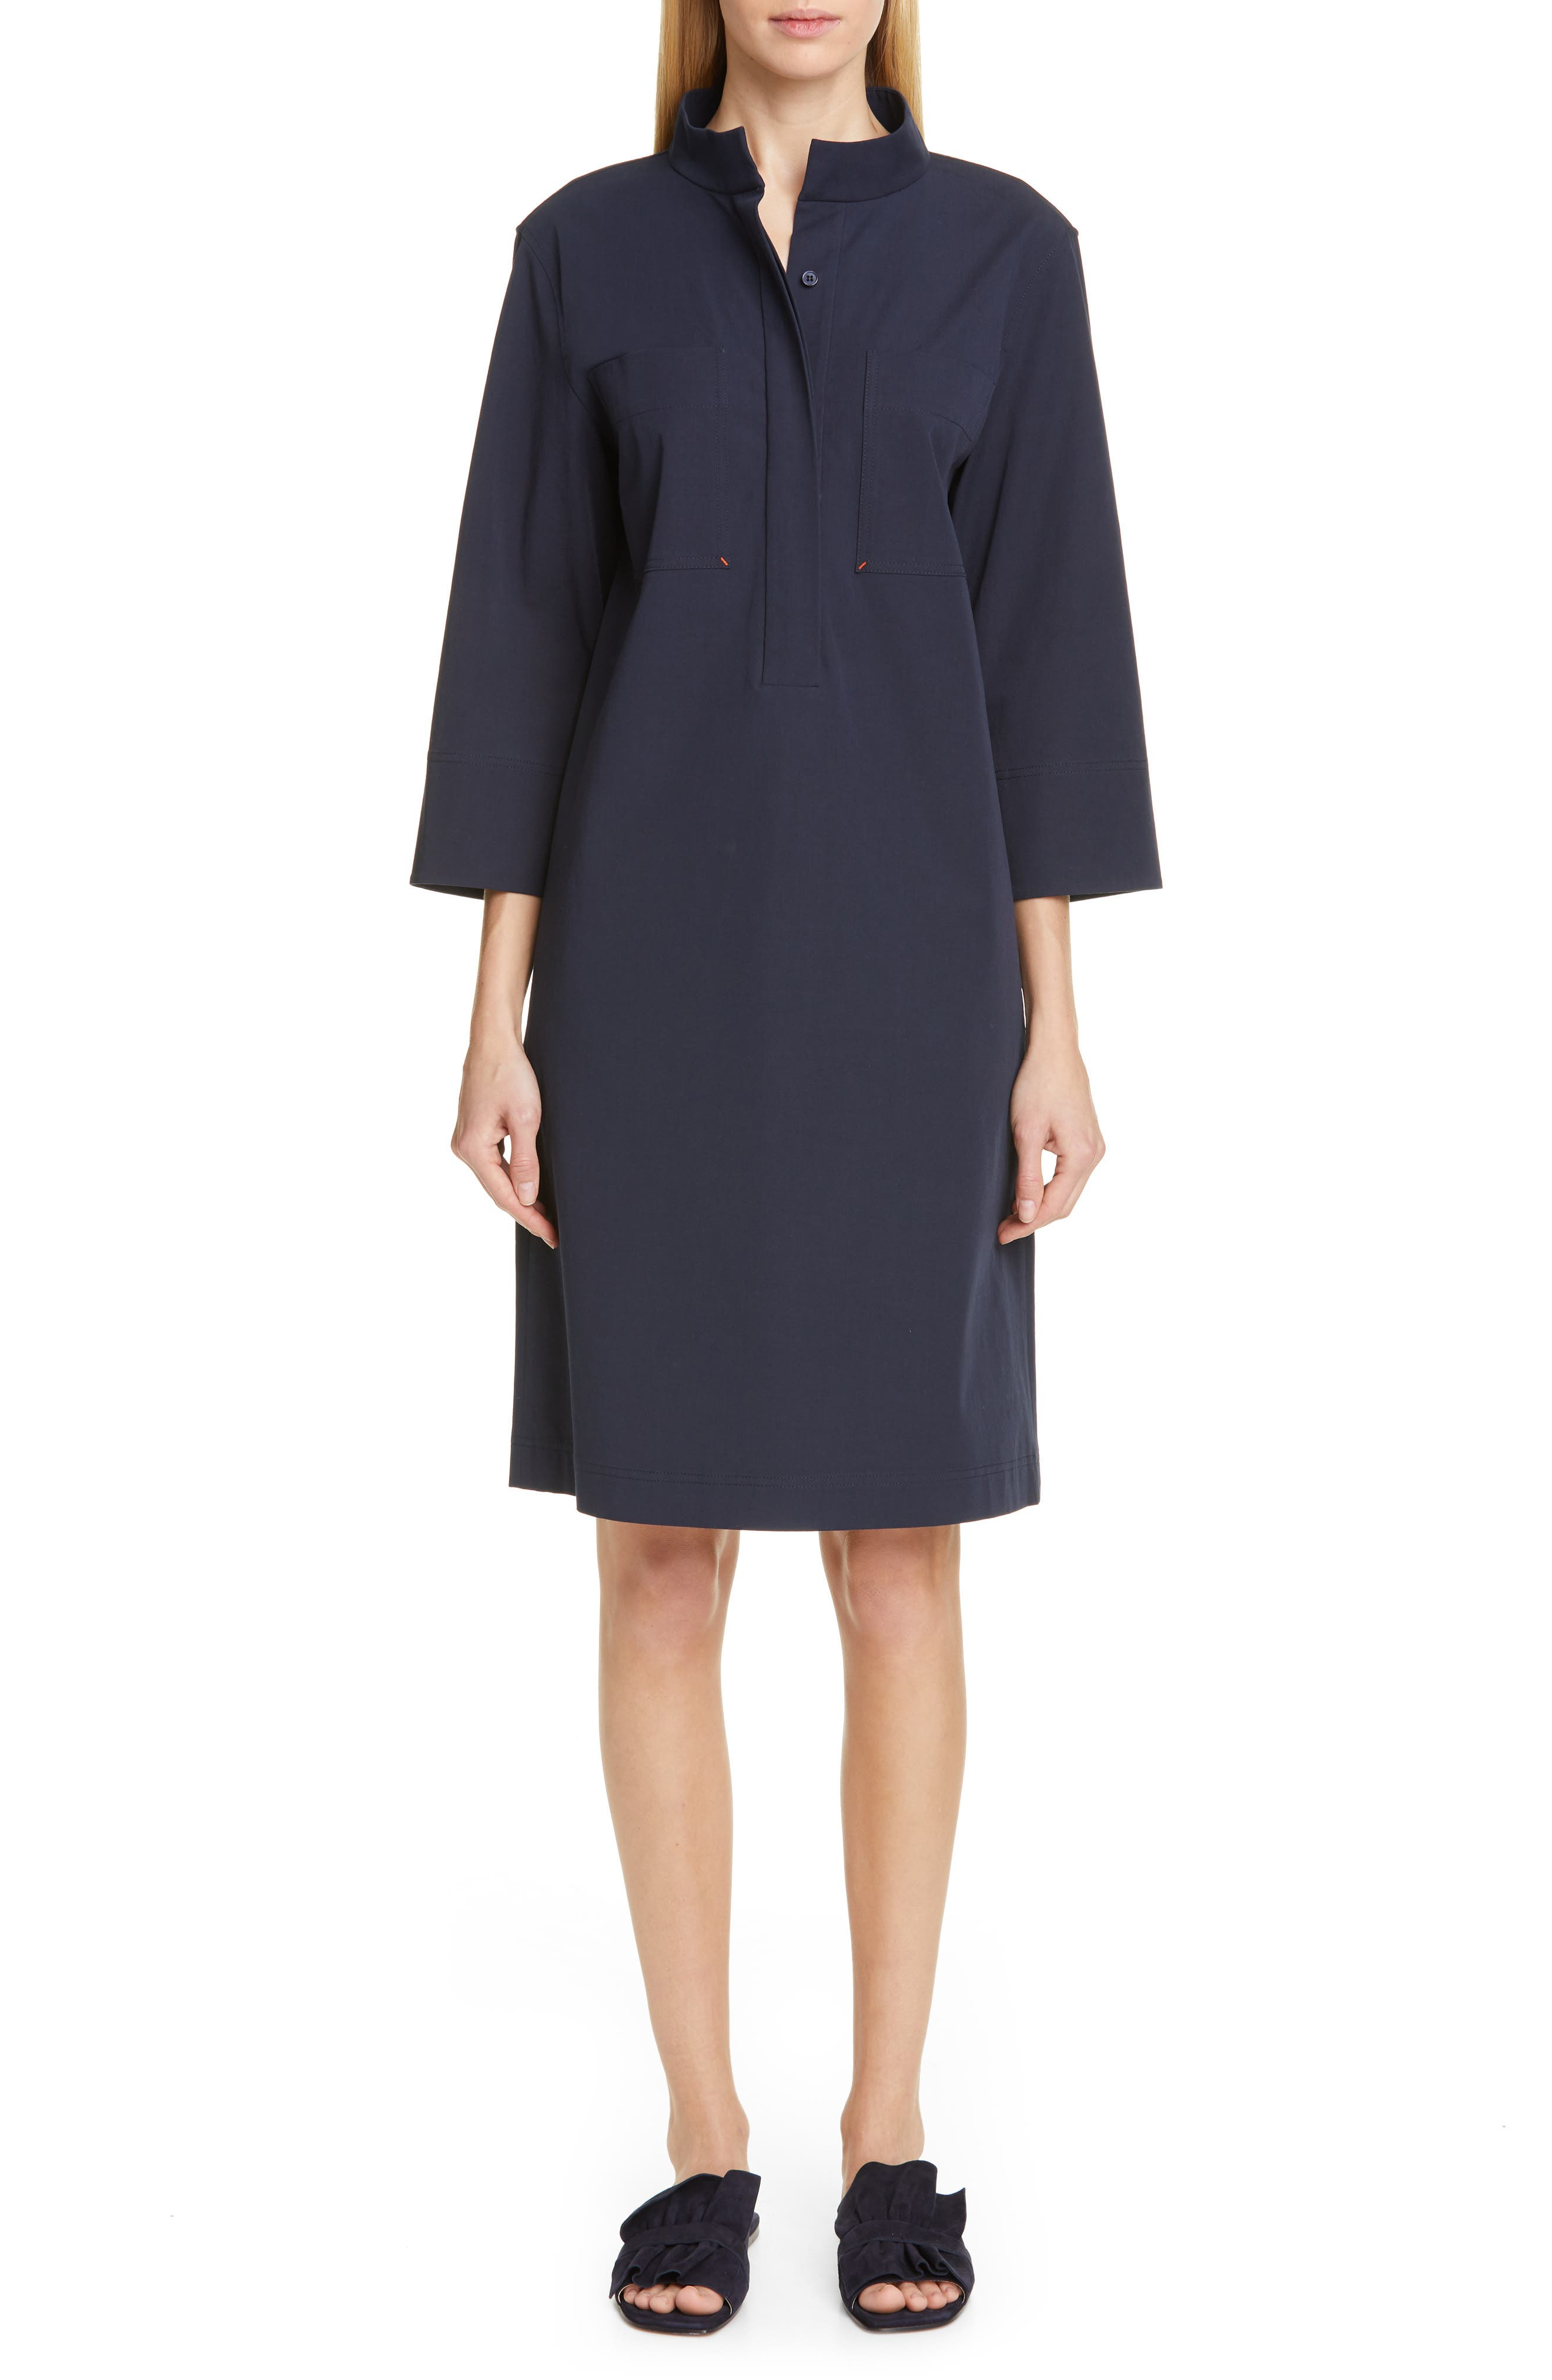 LAFAYETTE 148 NEW YORK, Mitchell Shift Dress, Main thumbnail 1, color, INK